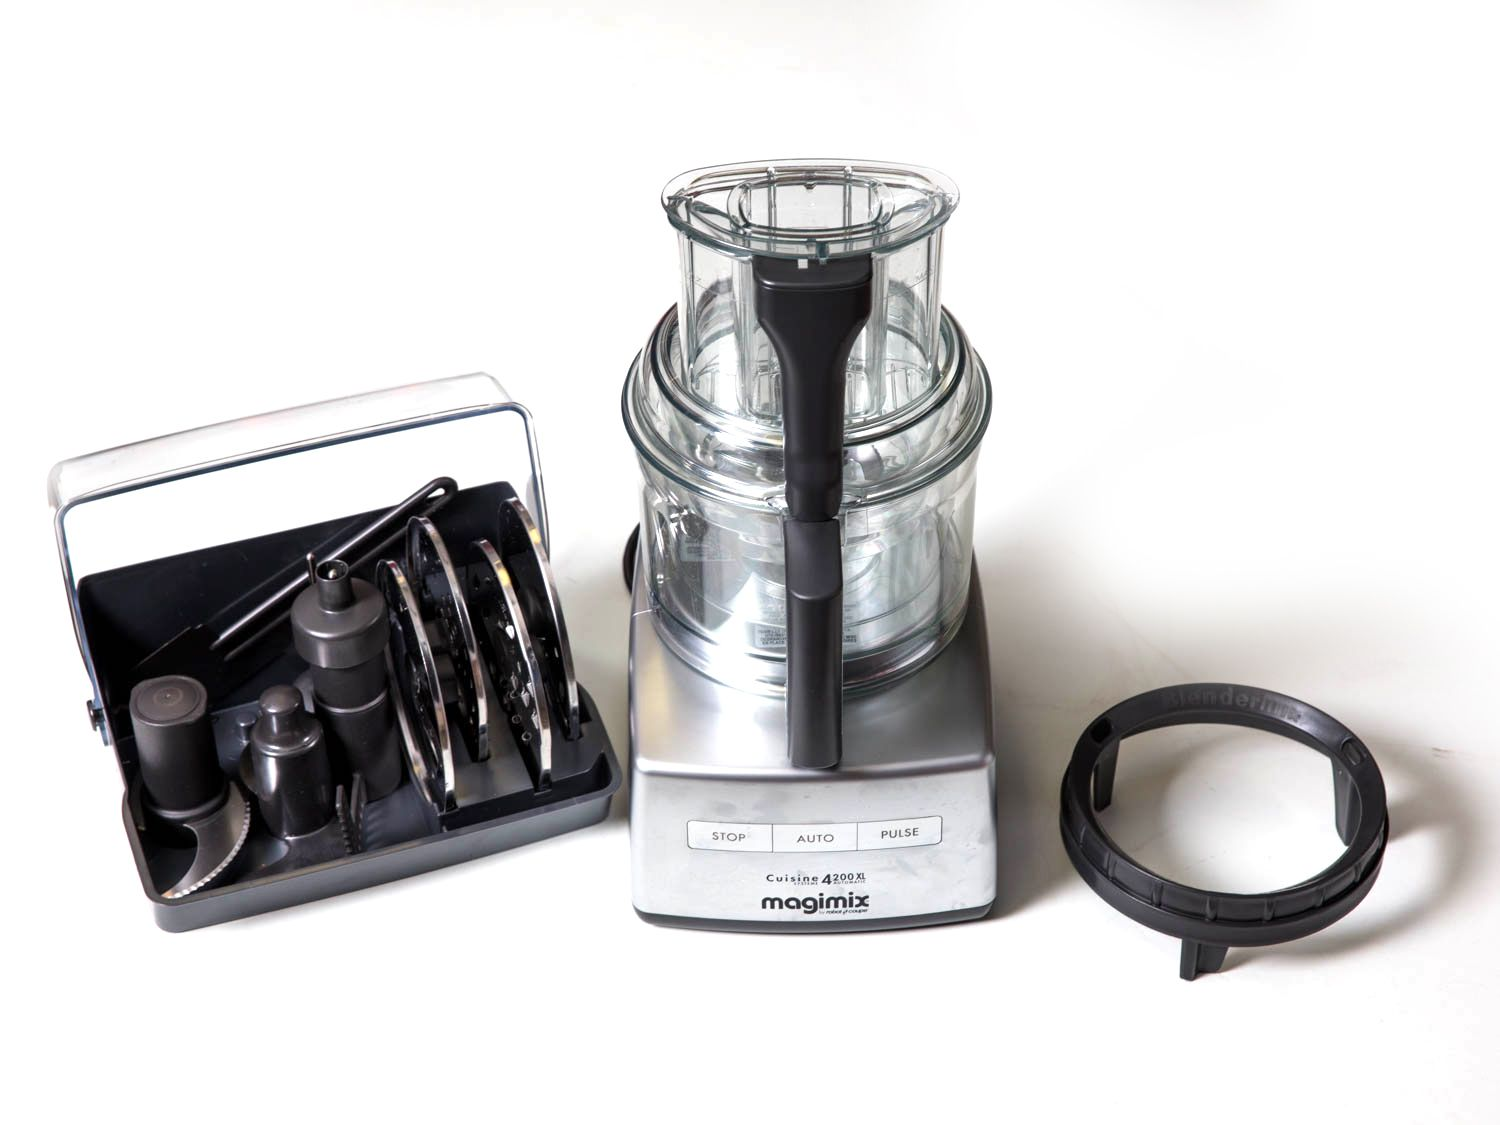 Magimix food processor with accessories